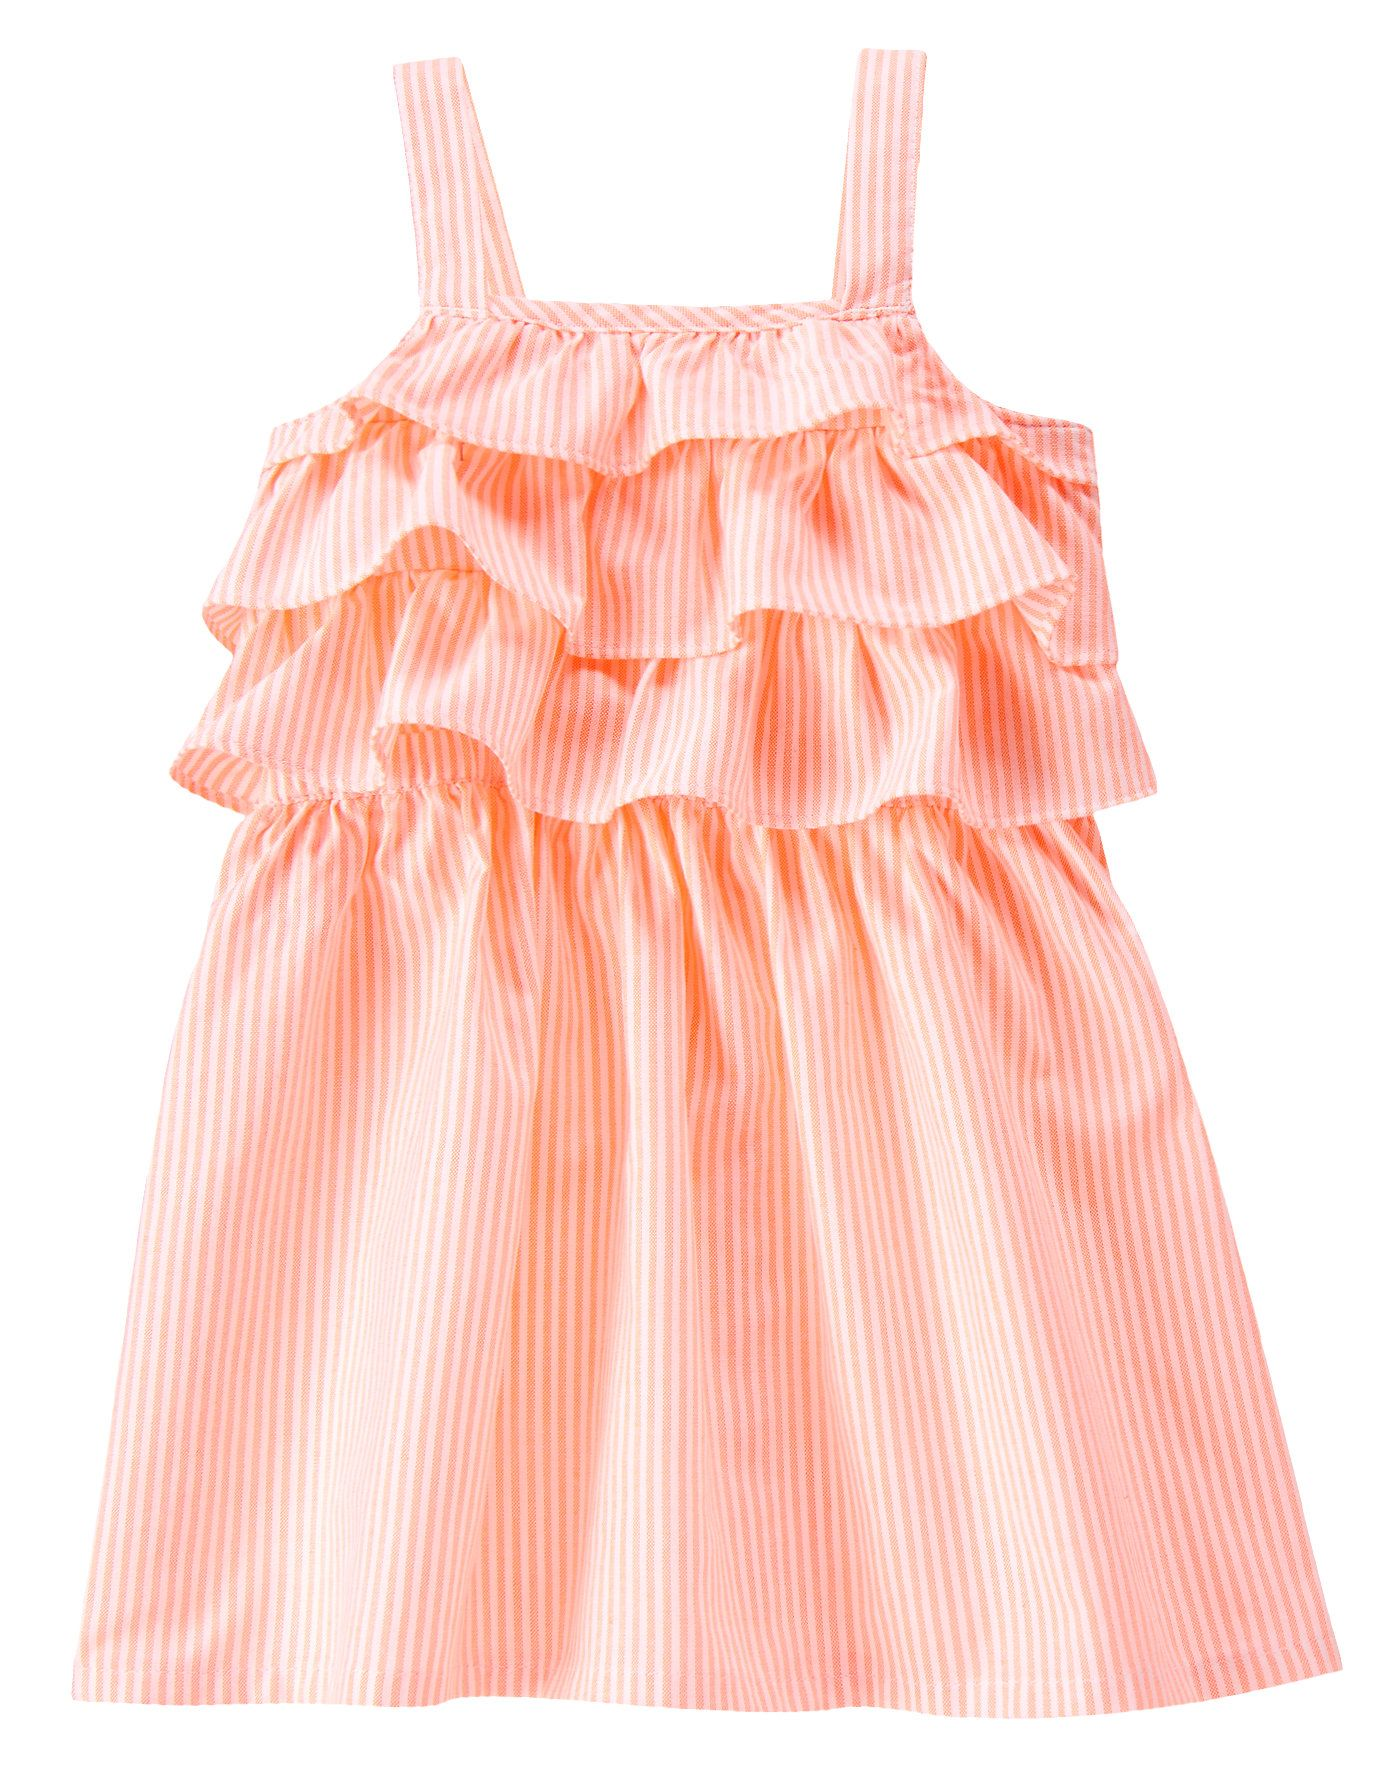 Neon Striped Dress 17 48 Available In Sizes 6 Months To 5 Years